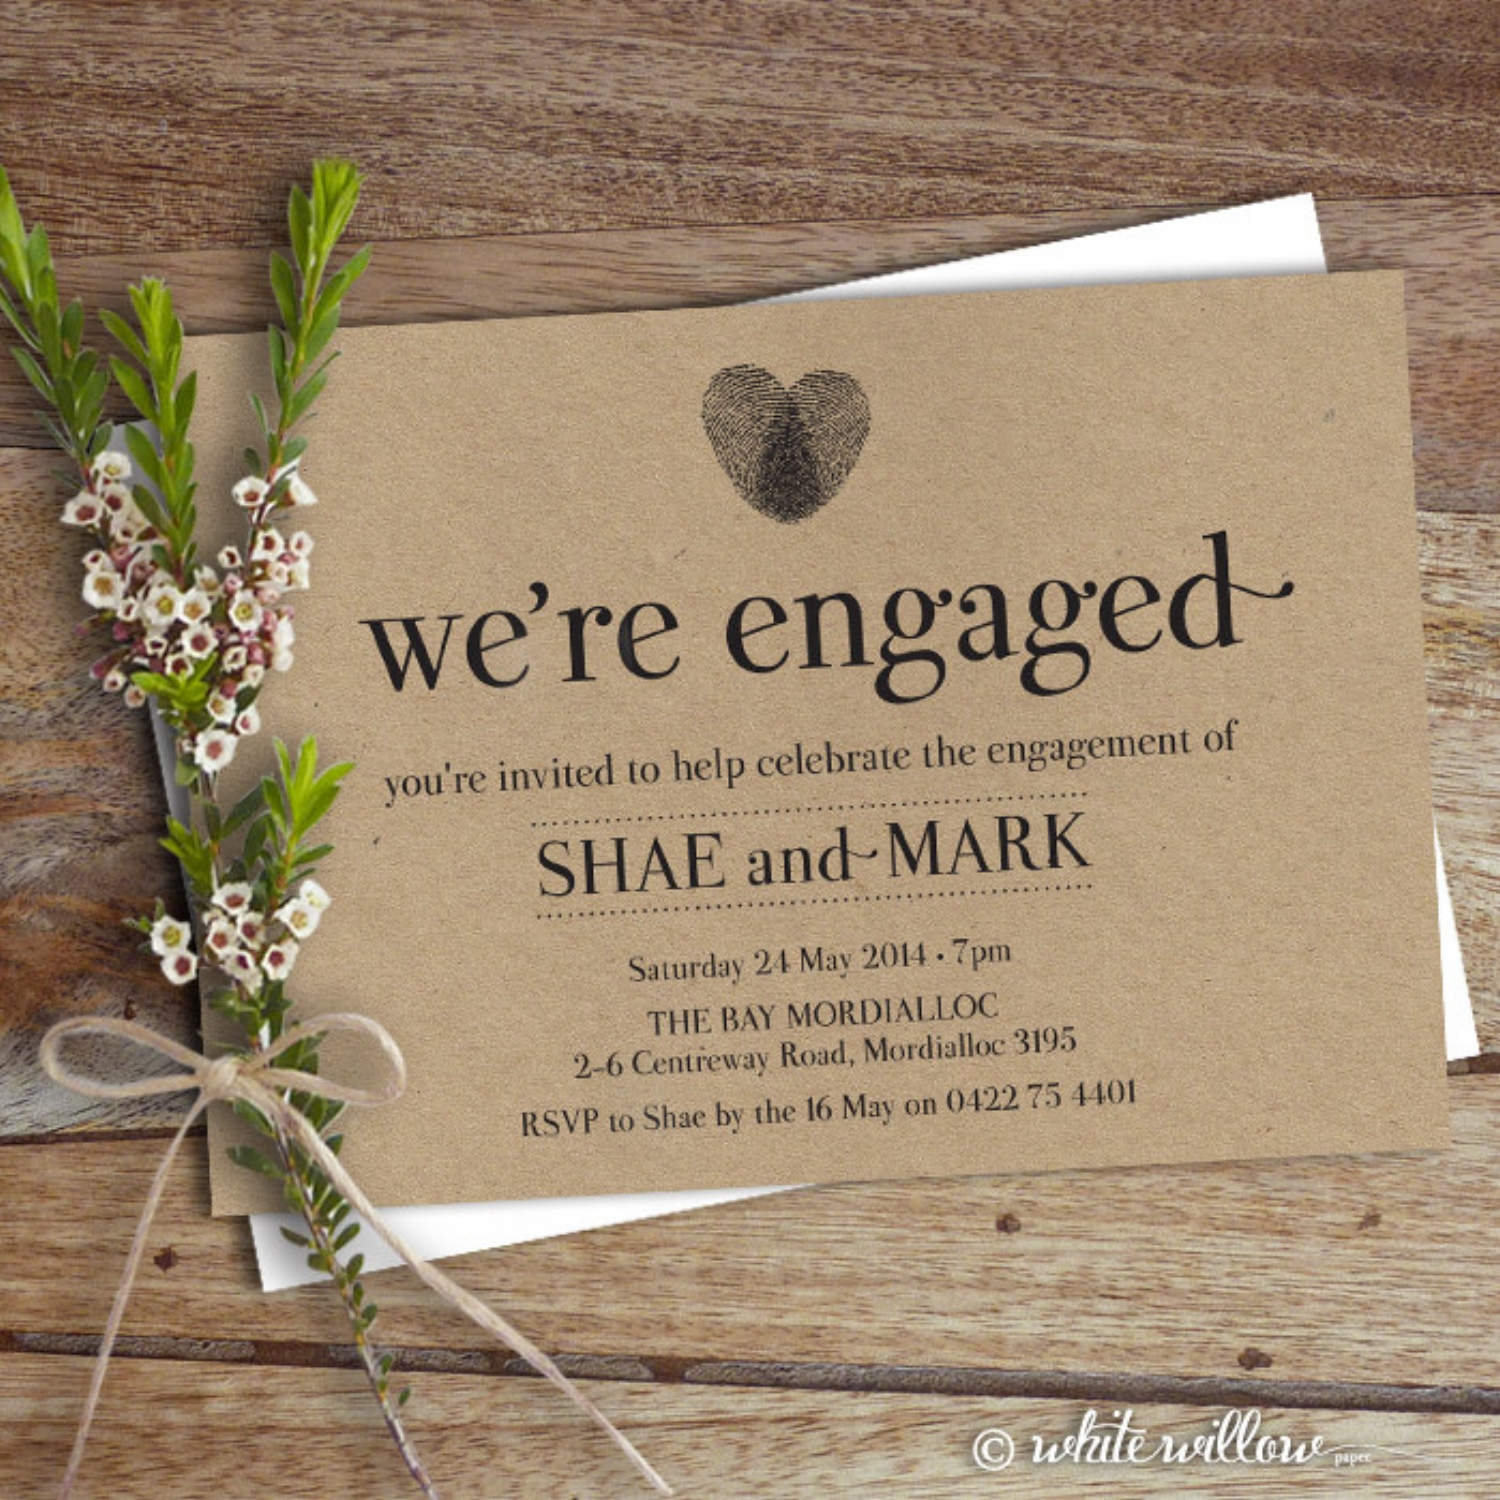 Engagement Party Ideas - Engagement party invitations